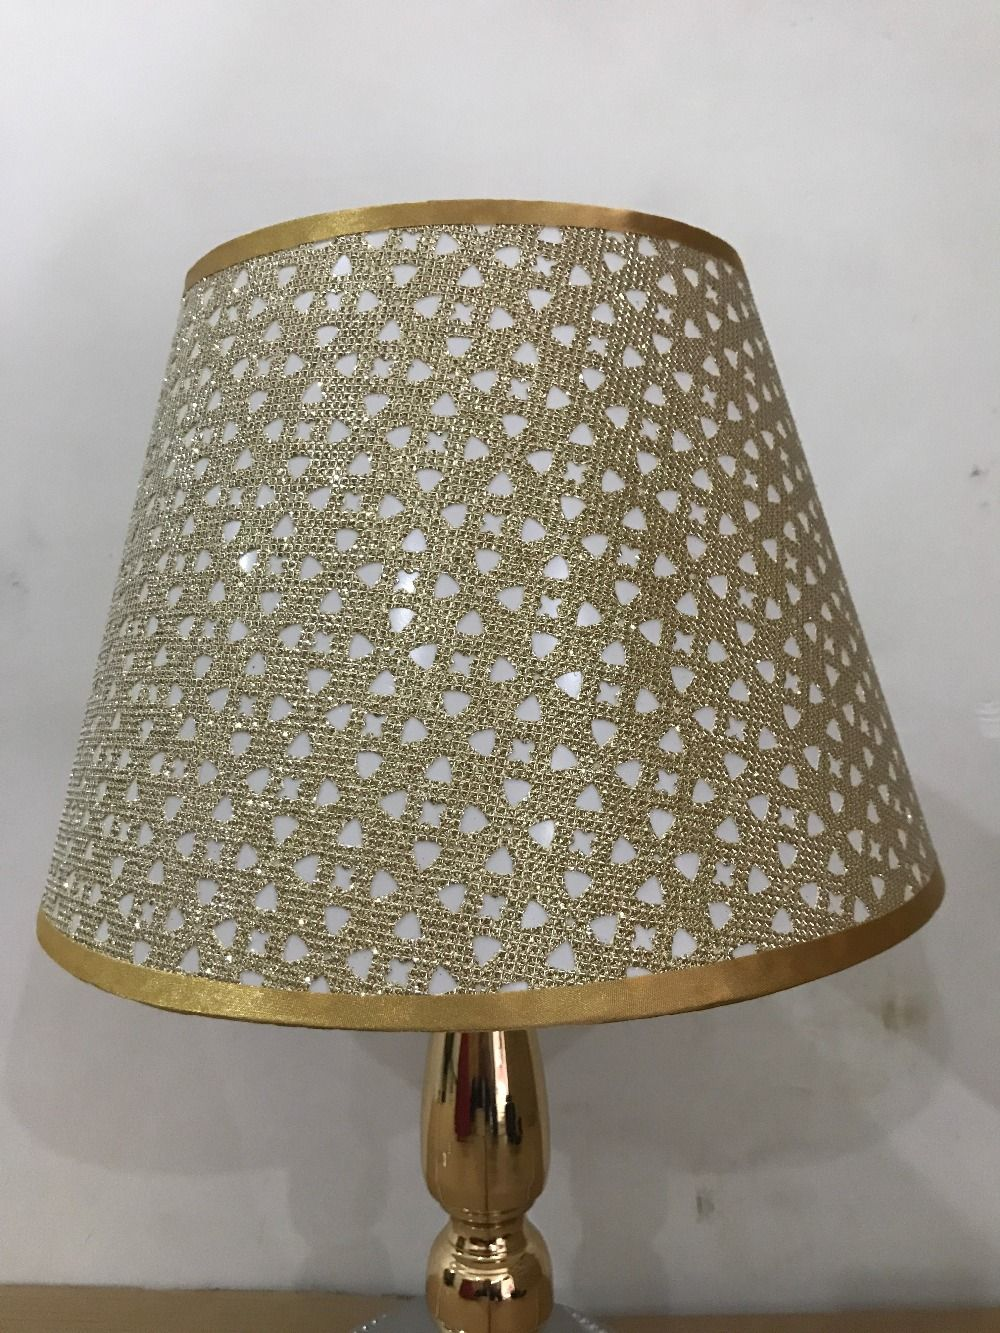 Click Image To Buy Lamp Shade For Table Lamps Painting Flower Abstract Pattern Textile Fabrics Decorative Lamp Shade Cheap Lamp Shades Table Lamp Shades